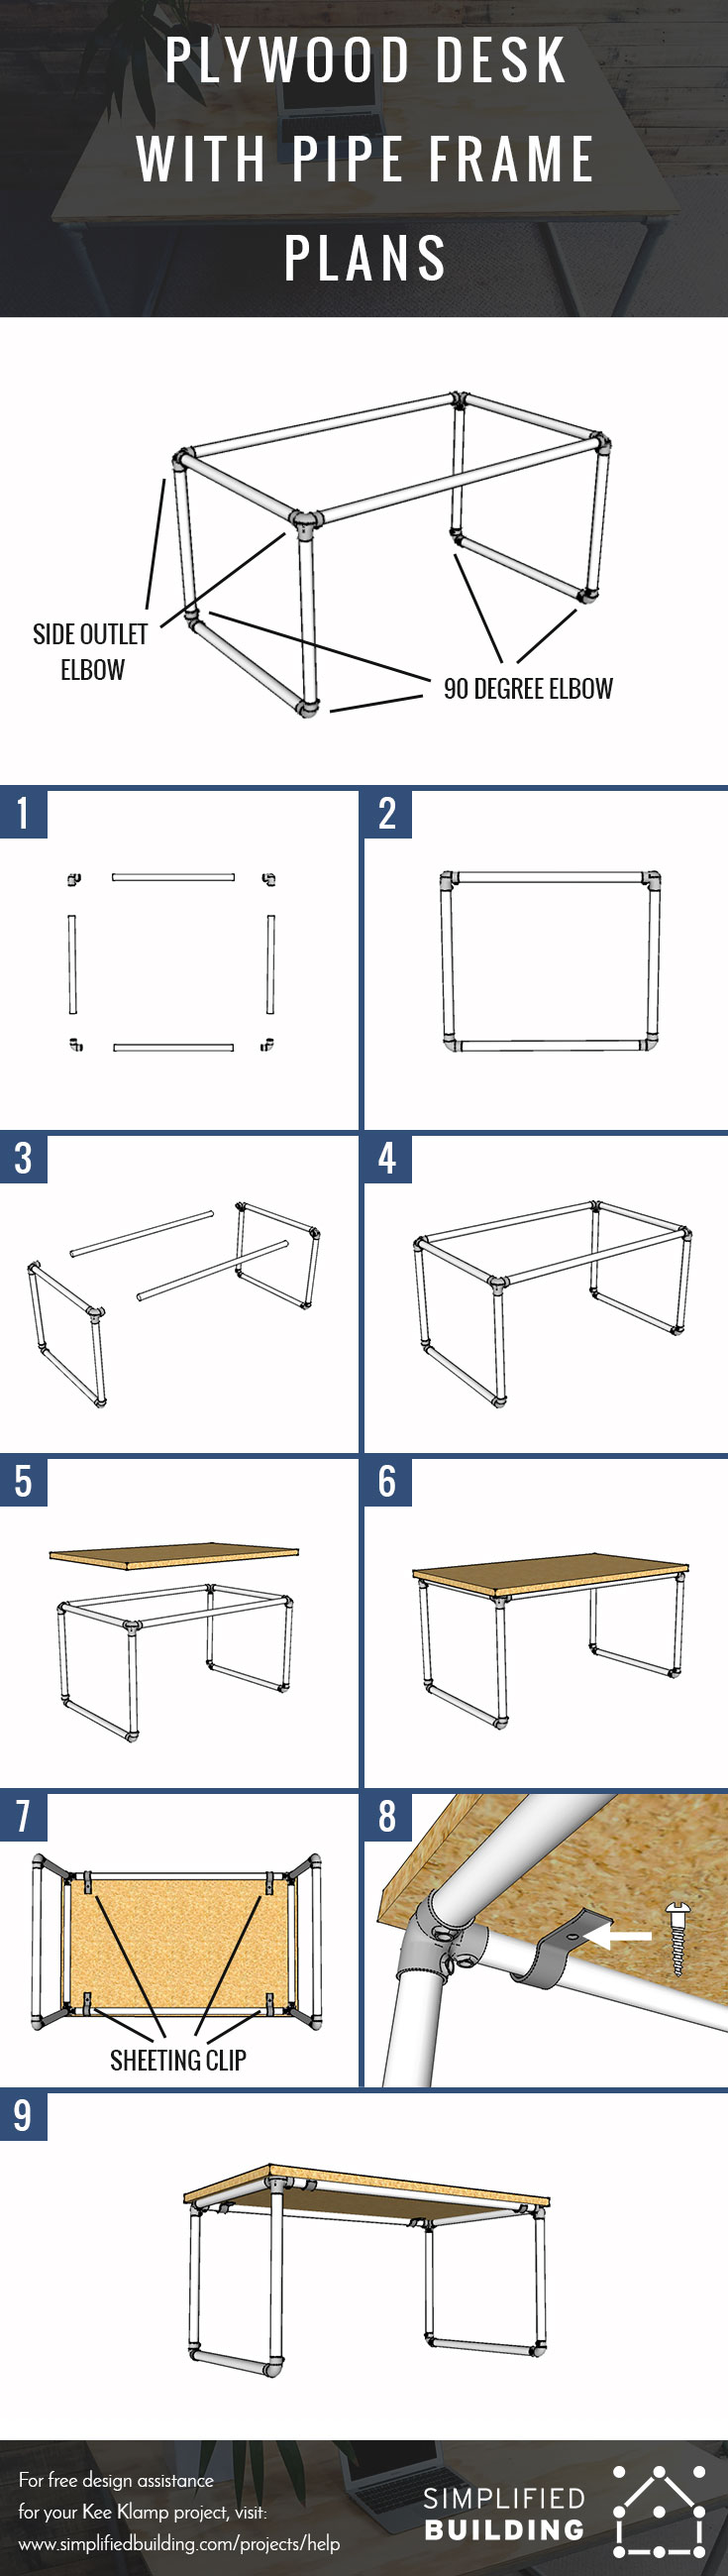 Plywood Desk Plans